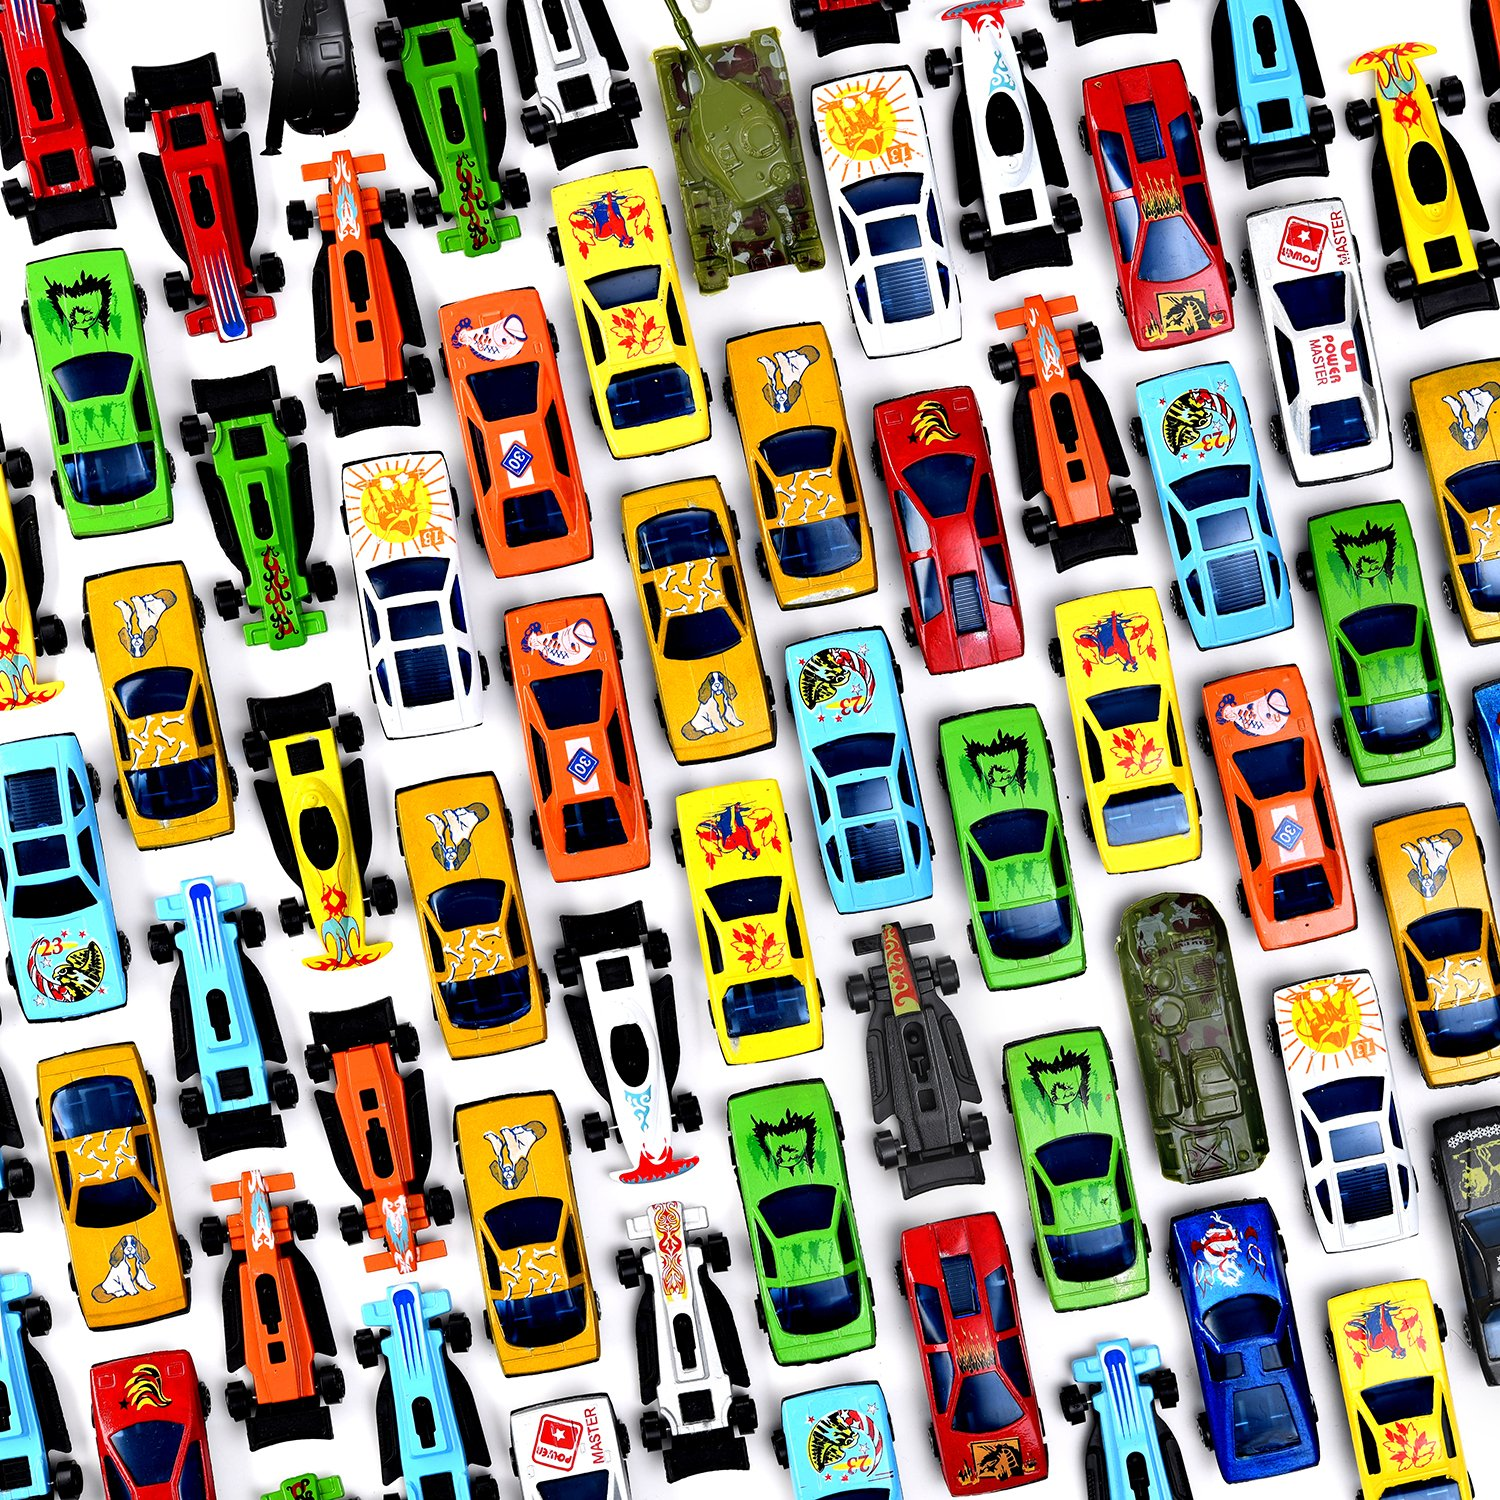 Prextex 100 Pc Die Cast Toy Cars Party Favors Easter Eggs Filler or Cake Toppers Stocking Stuffers Cars Toys for Kids by Prextex